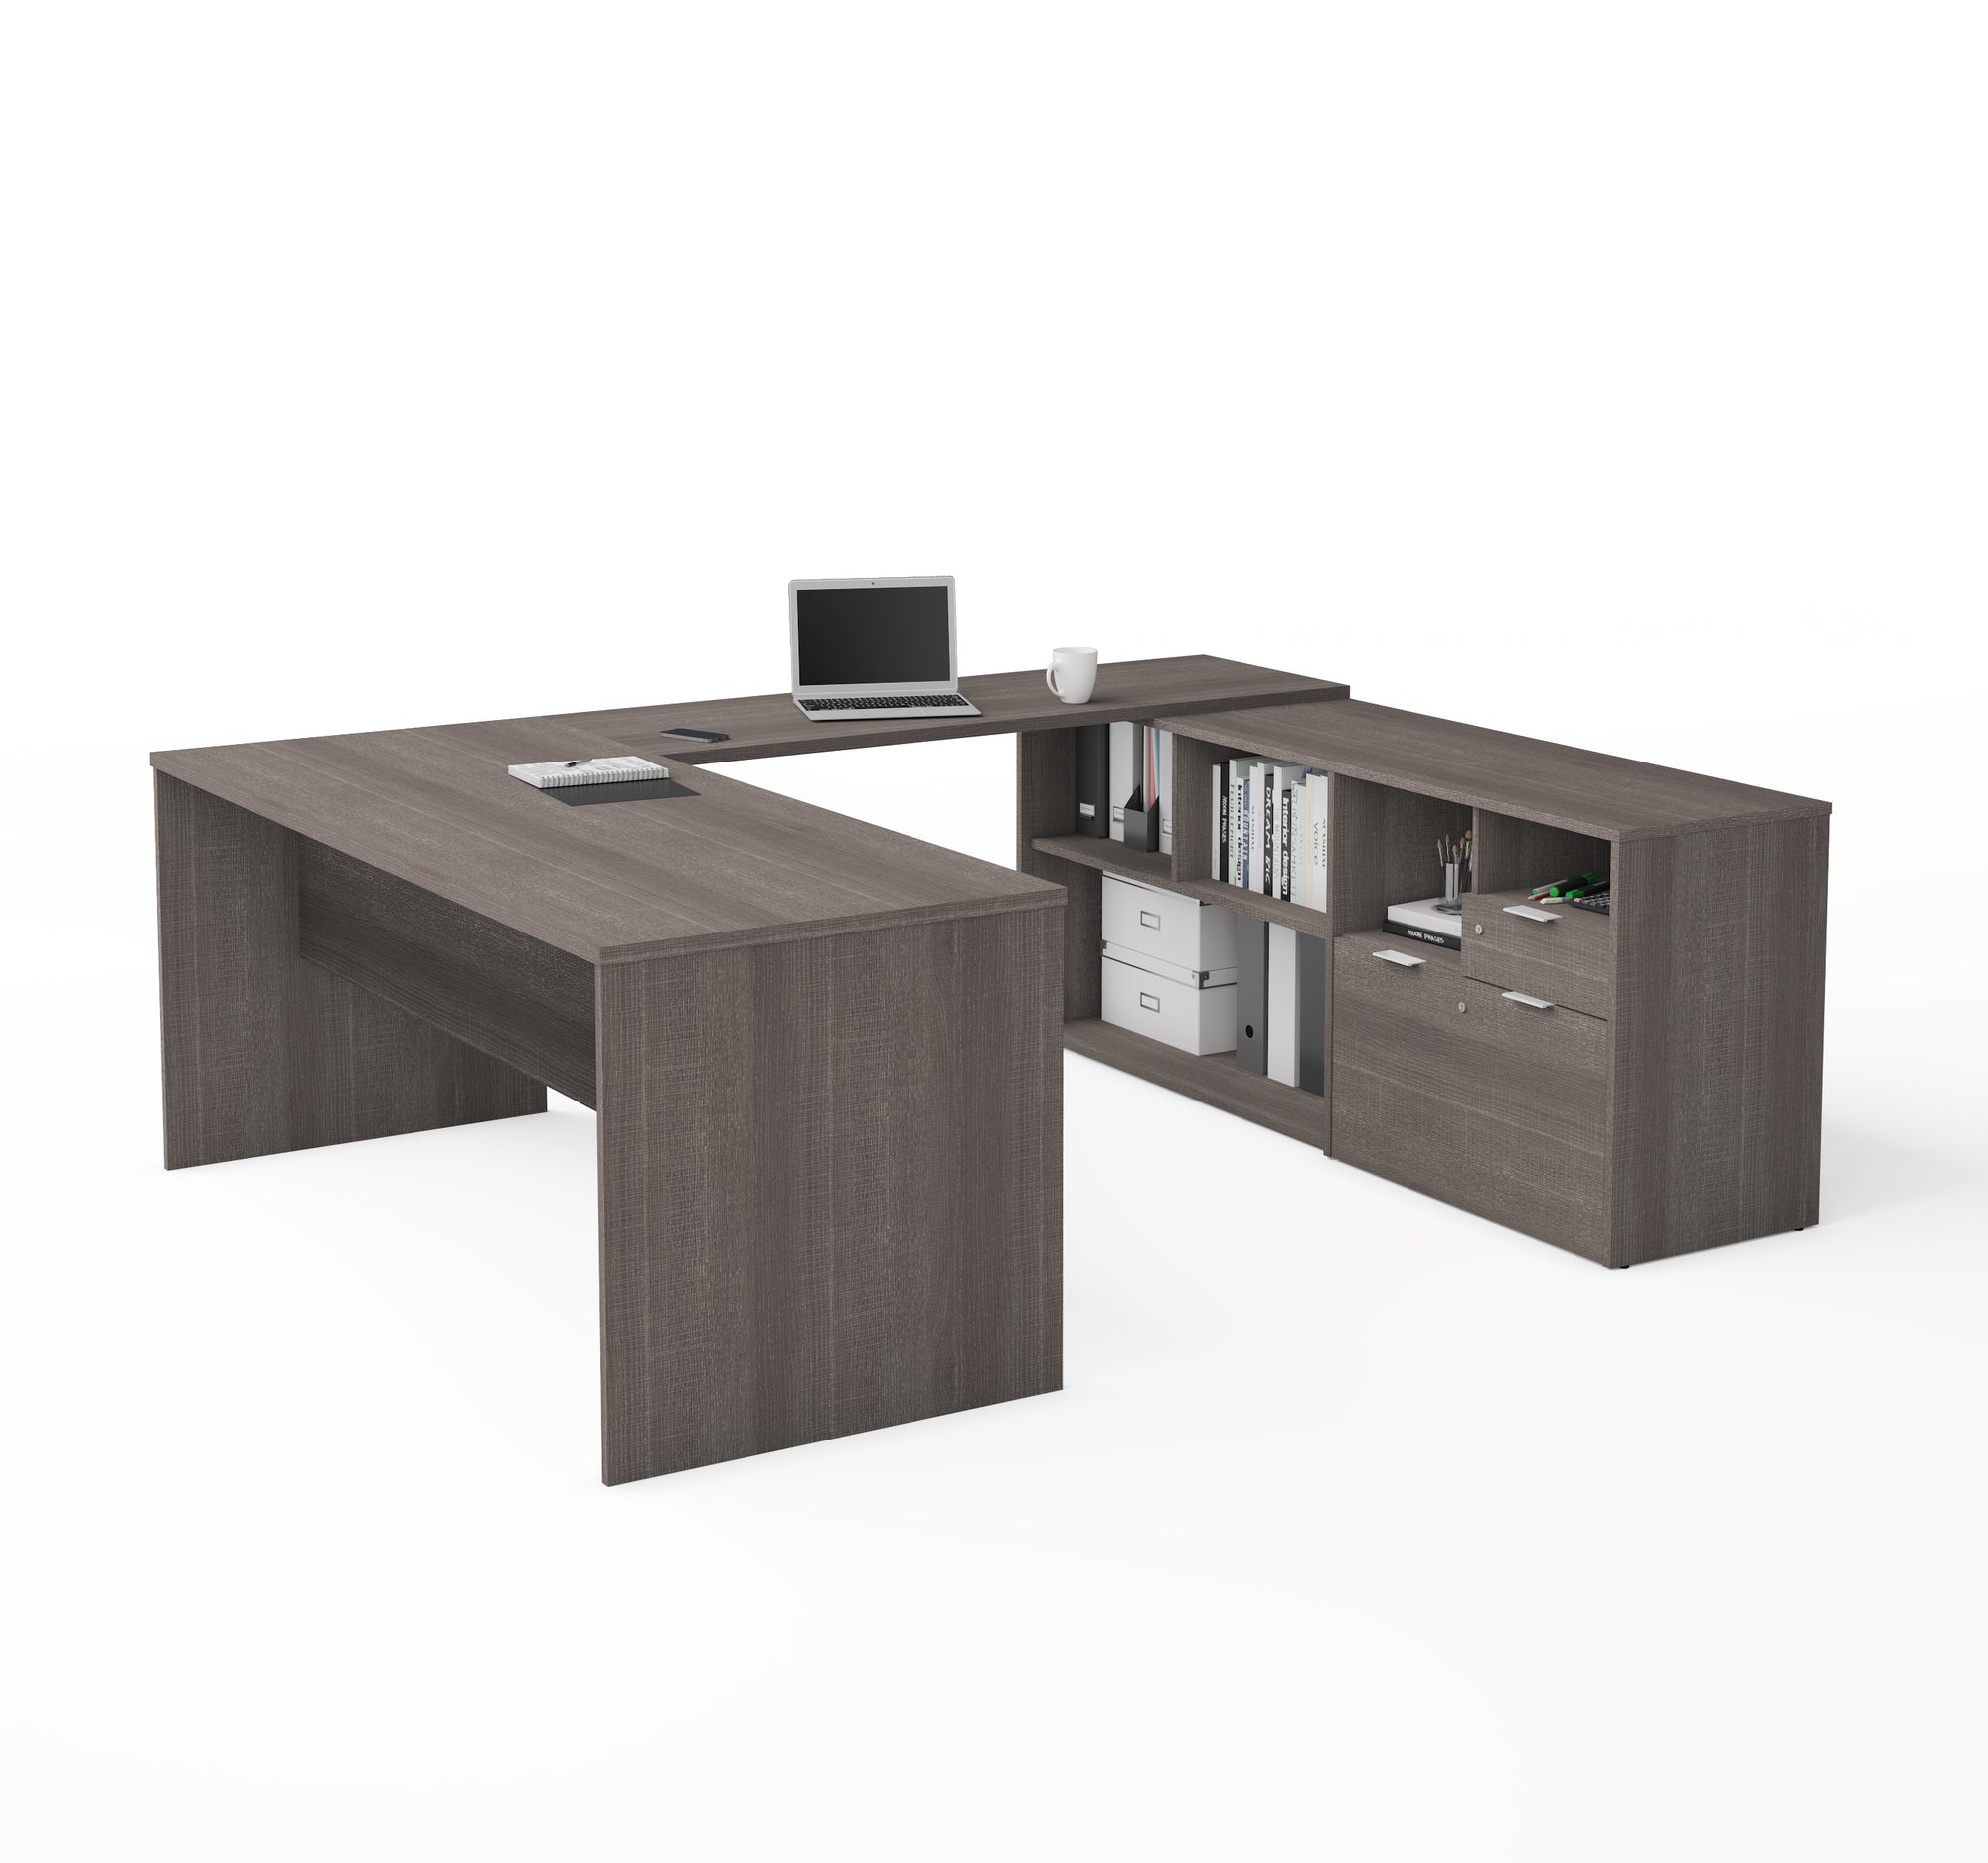 Modern U-Shaped Office Desk in Bark Grey with Credenza